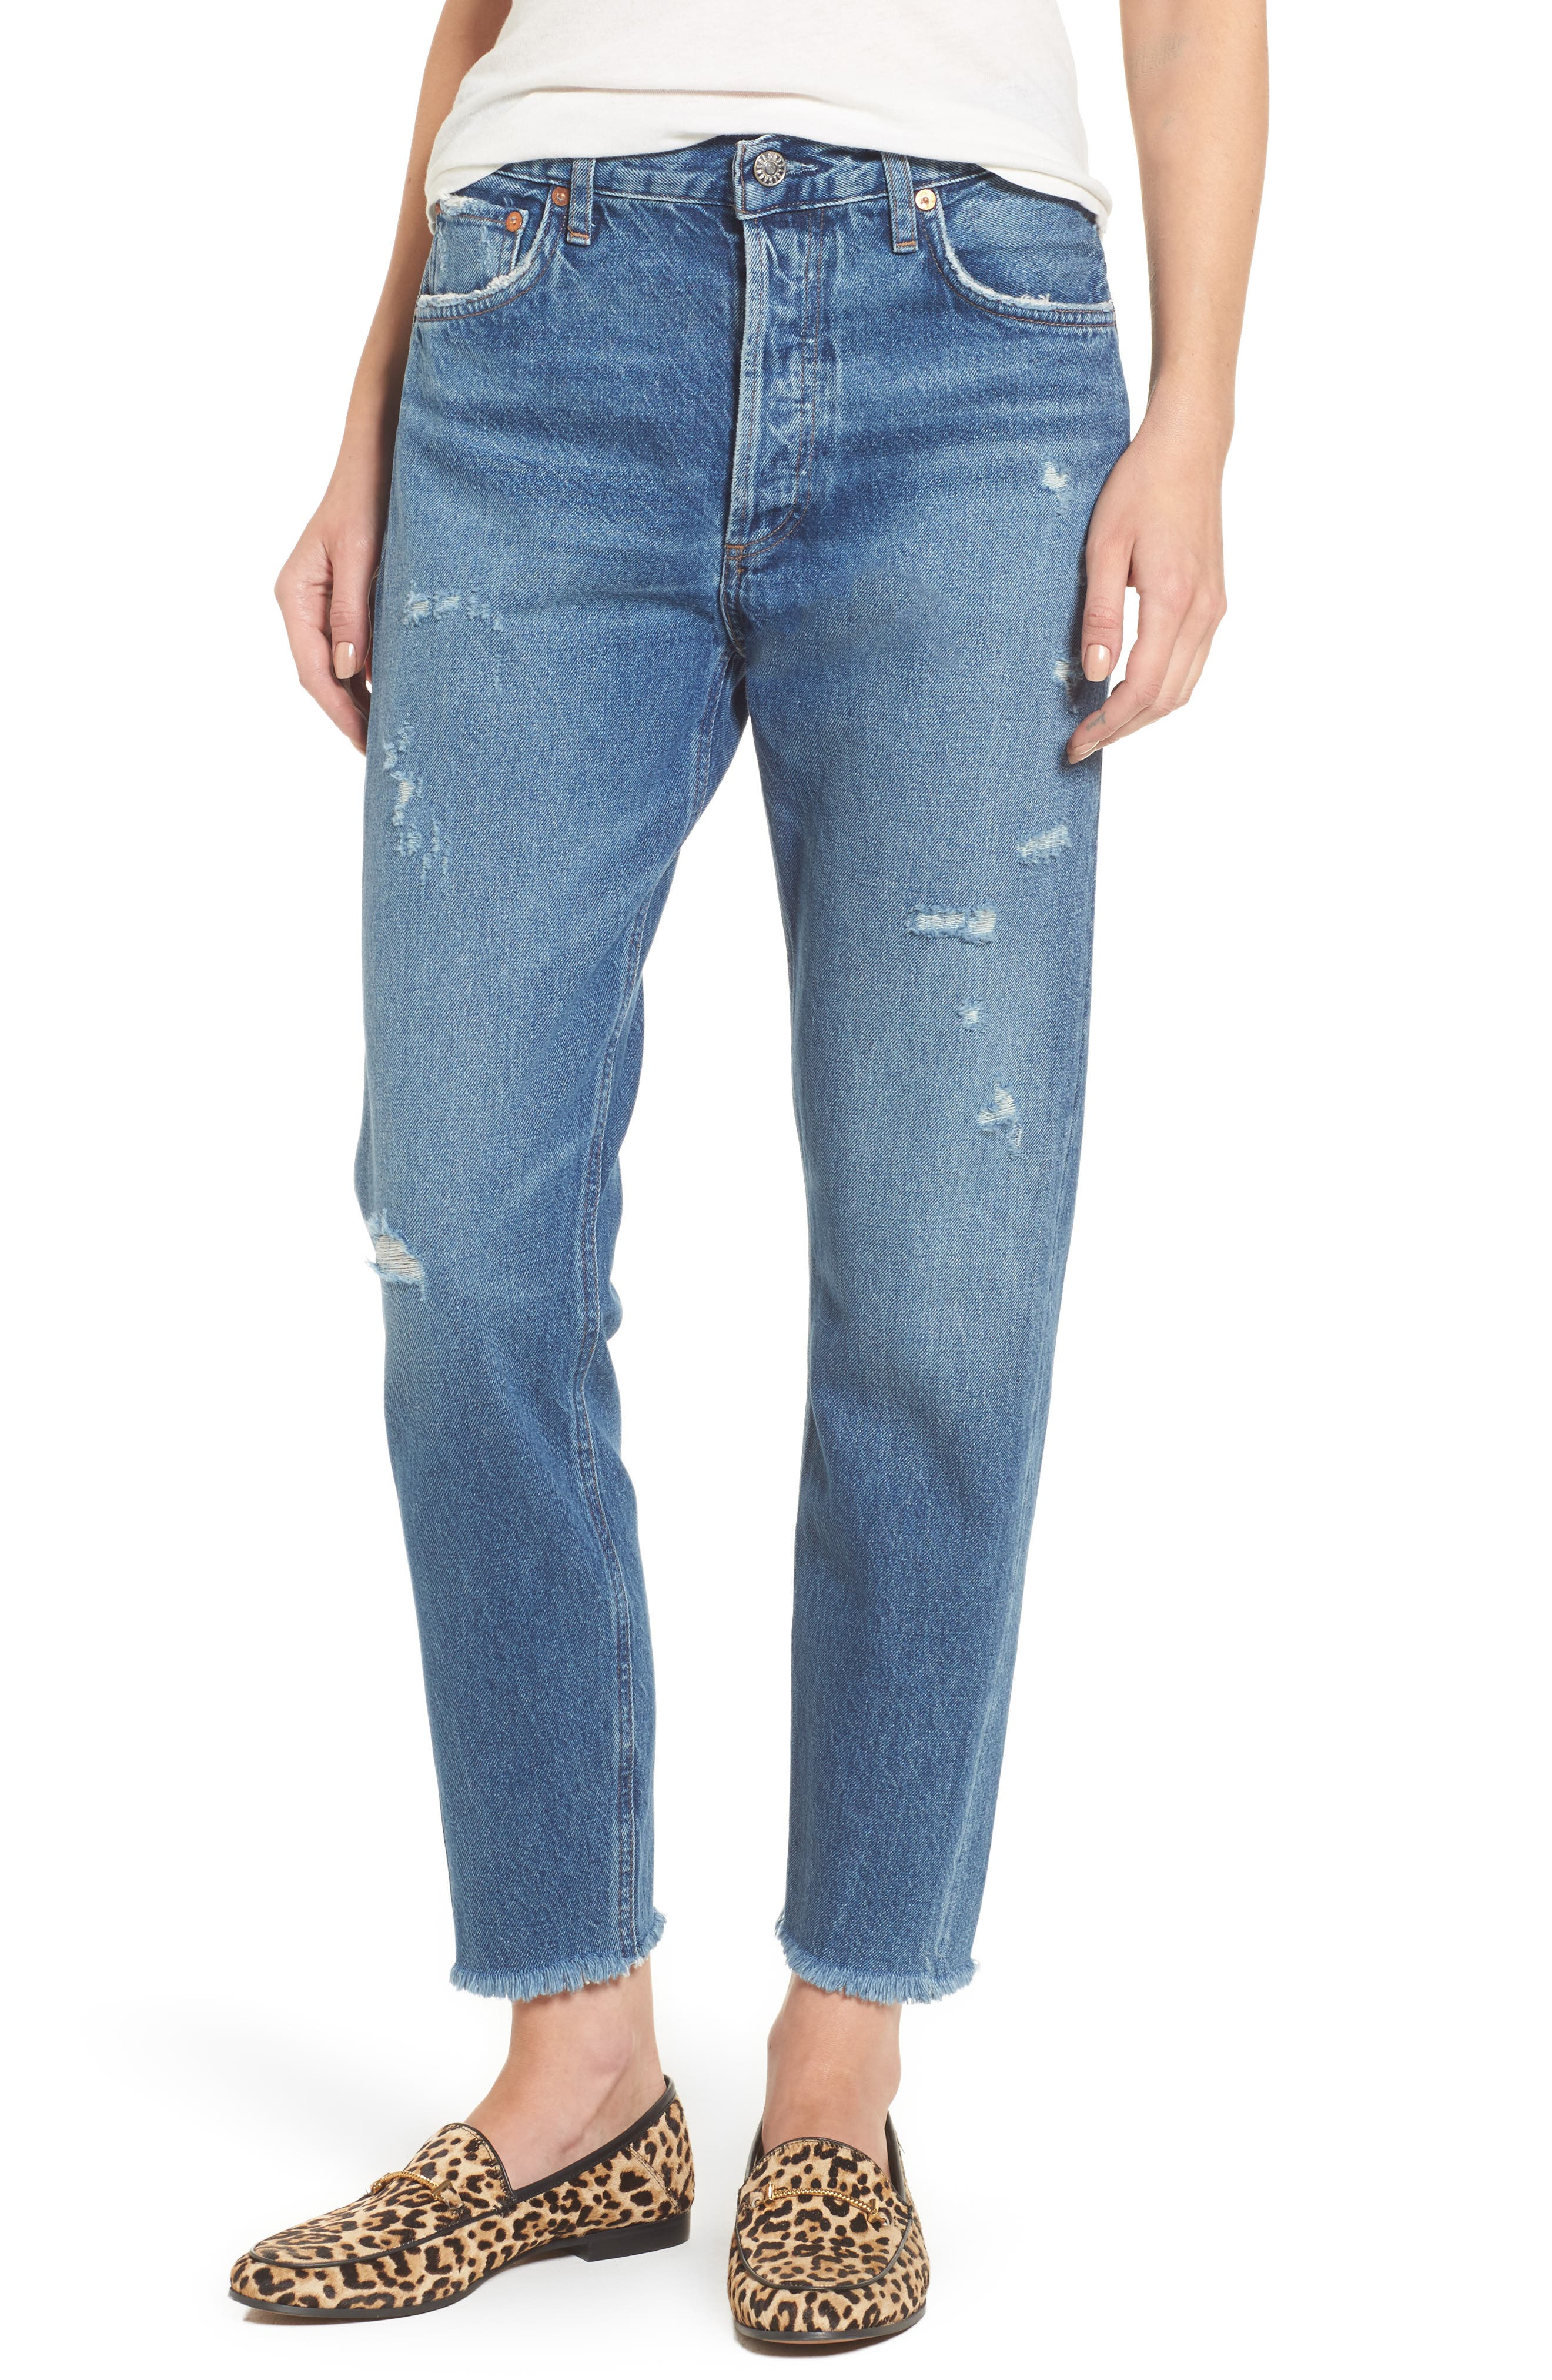 Alternate Image 1 Selected - AGOLDE Jamie High Rise Classic Jeans (Lowdown)